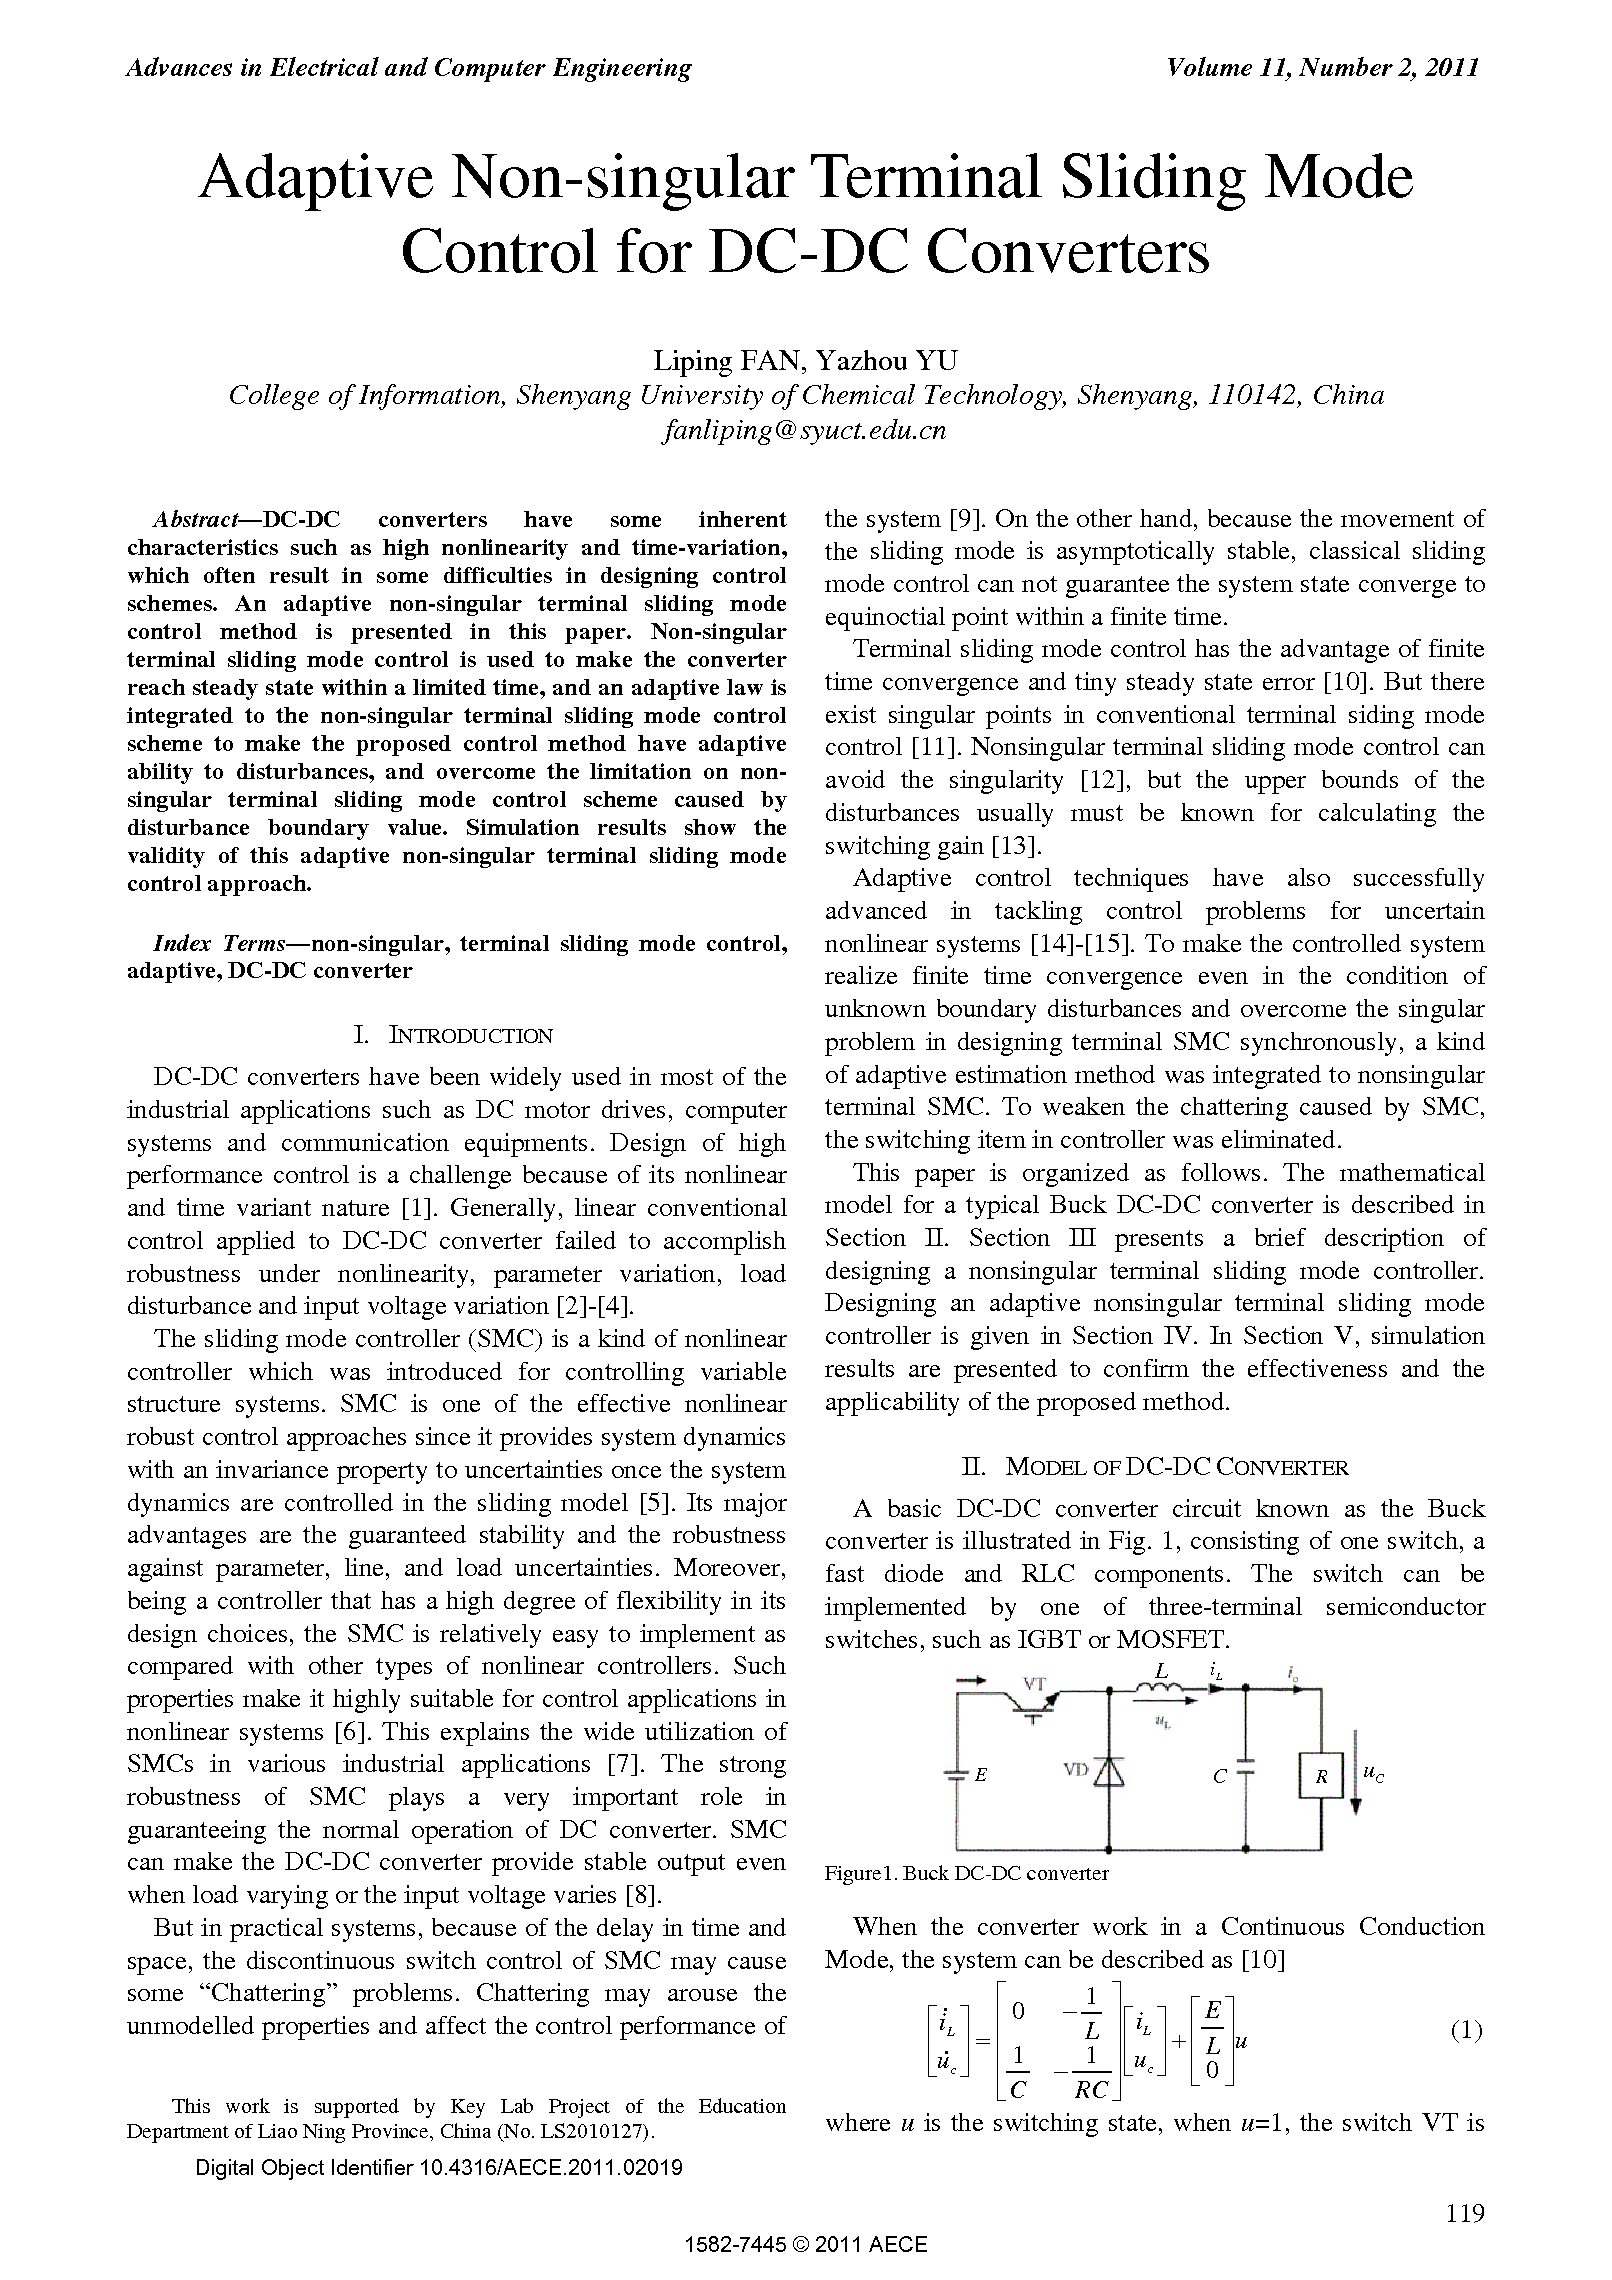 PDF Quickview for paper with DOI:10.4316/AECE.2011.02019